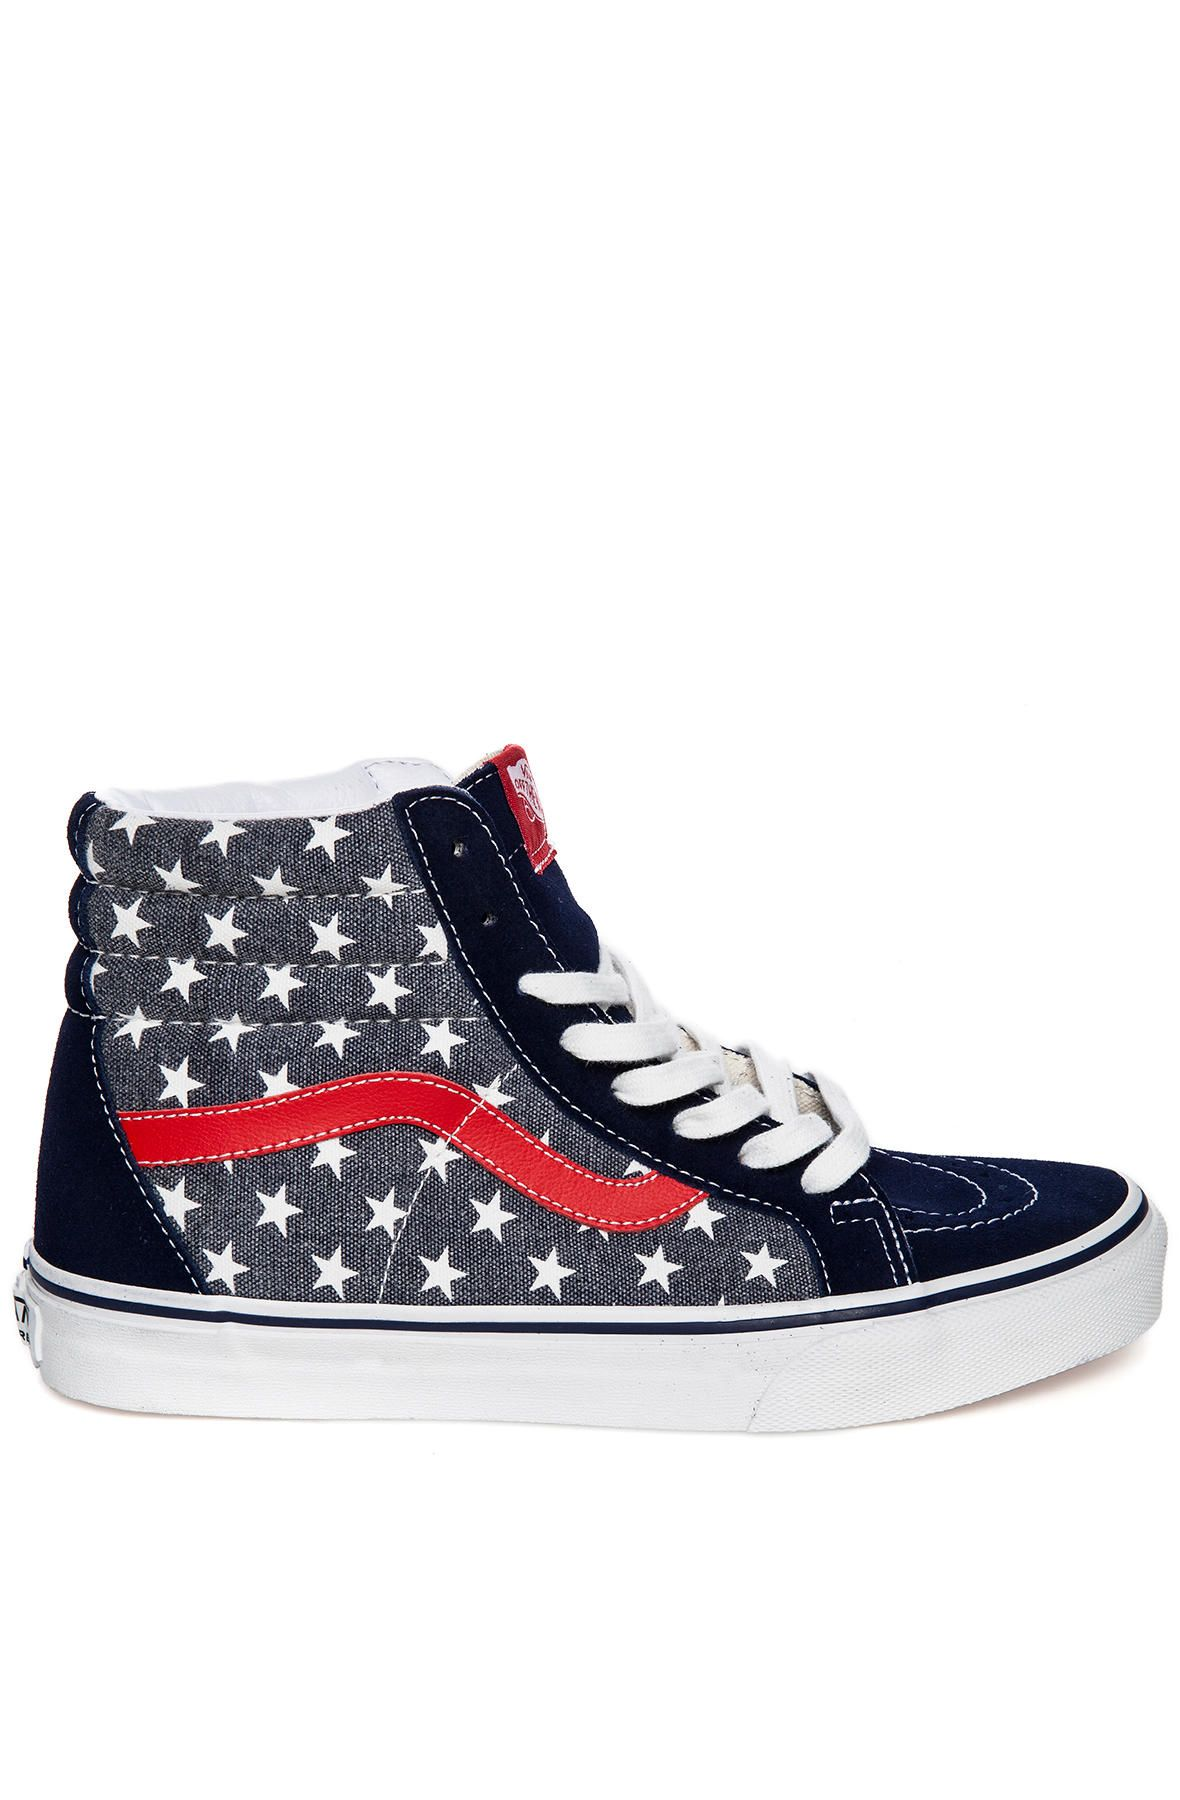 c83bb2044a6d The Sk8 Hi Reissue in Van Doren Stars and Stripes - By Vans - http ...